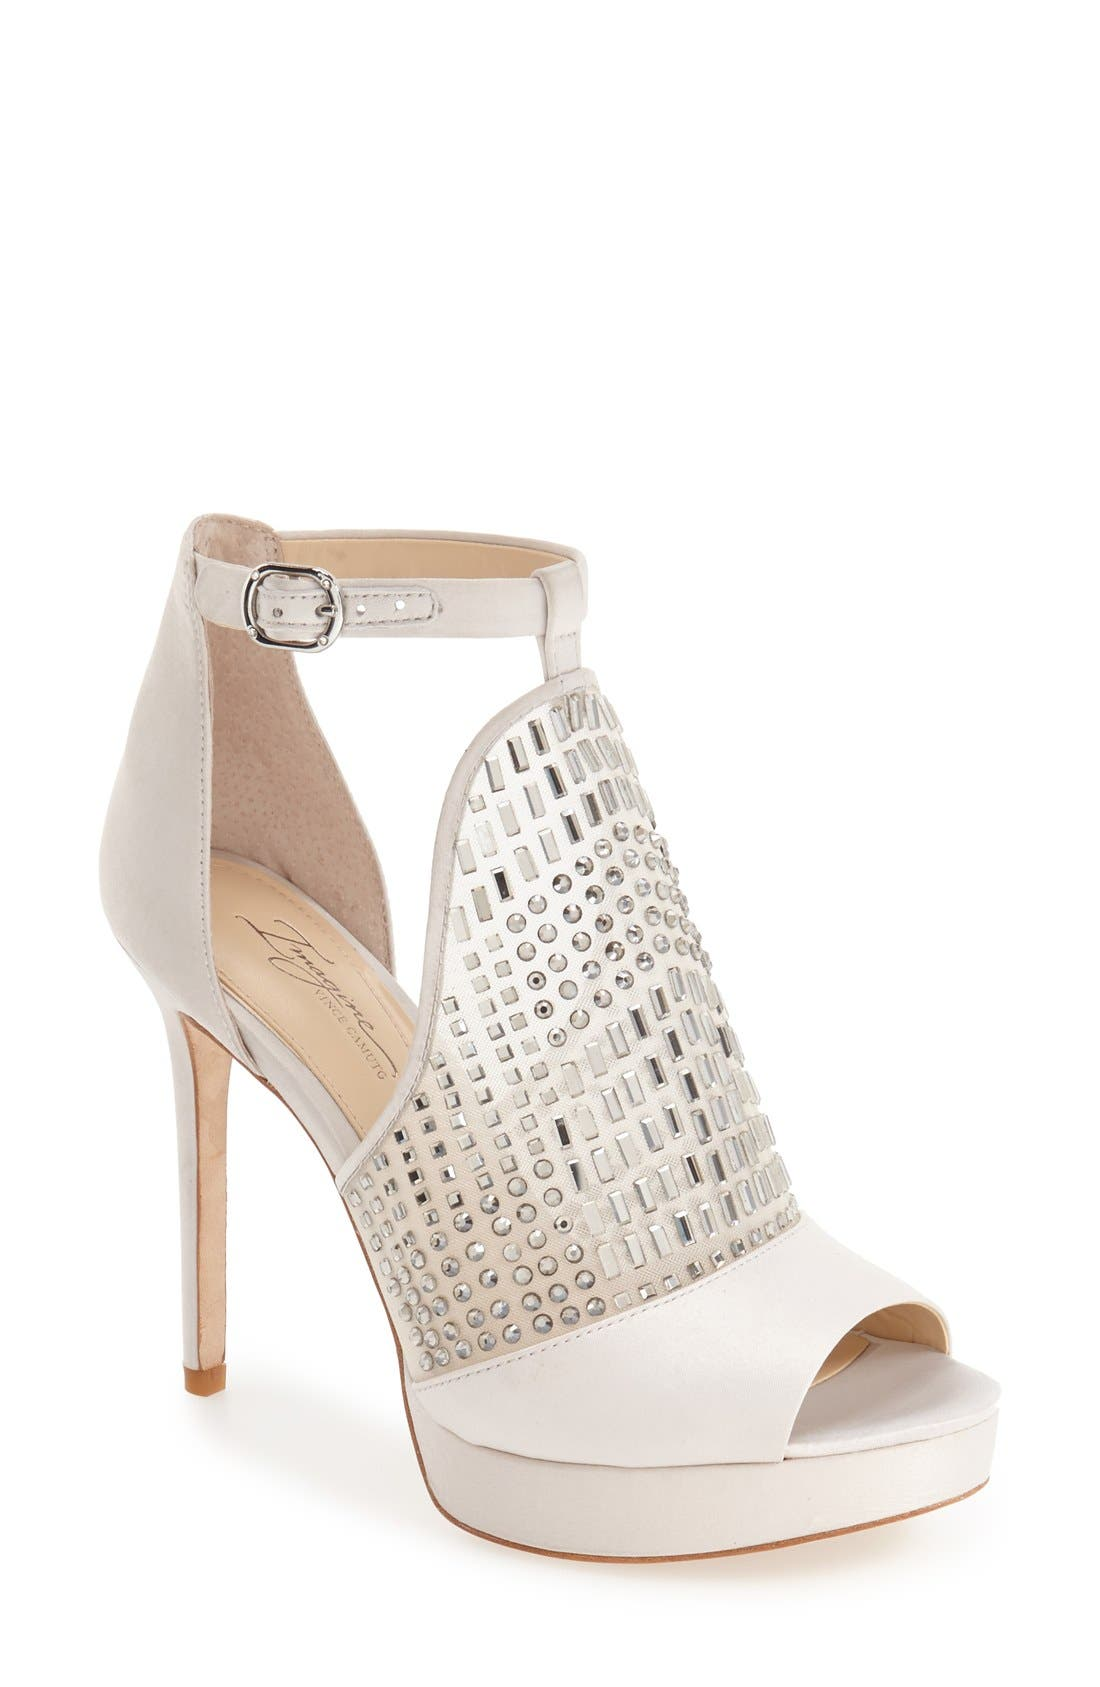 Alternate Image 1 Selected - Imagine by Vince Camuto 'Keir' T-Strap Platform Sandal (Women)